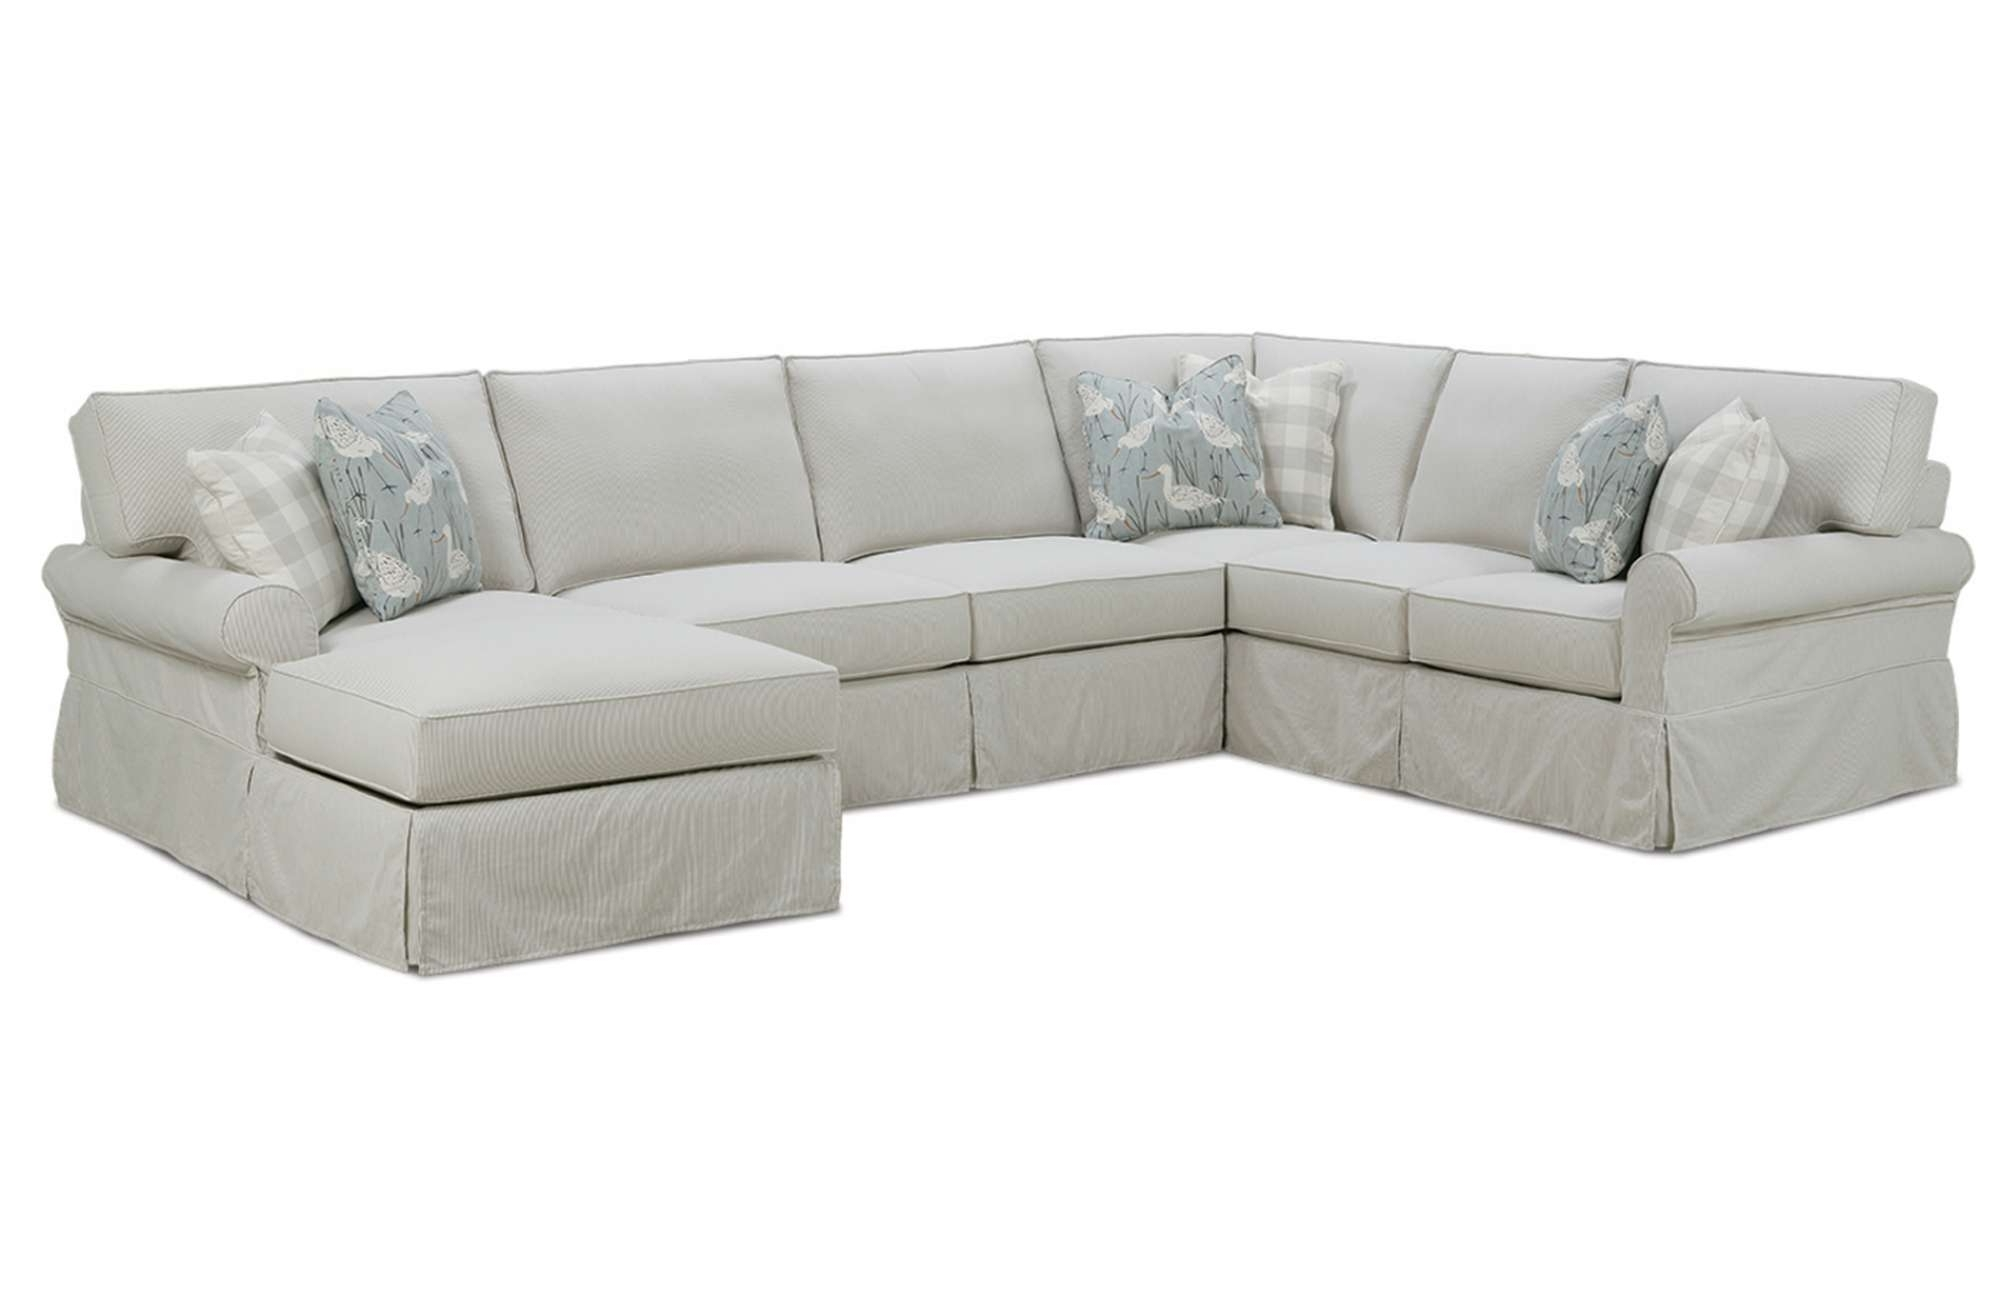 Fashionable Easton Slipcover Sectionalrowe Furniture With Slipcovers For Sectionals With Chaise (View 4 of 15)